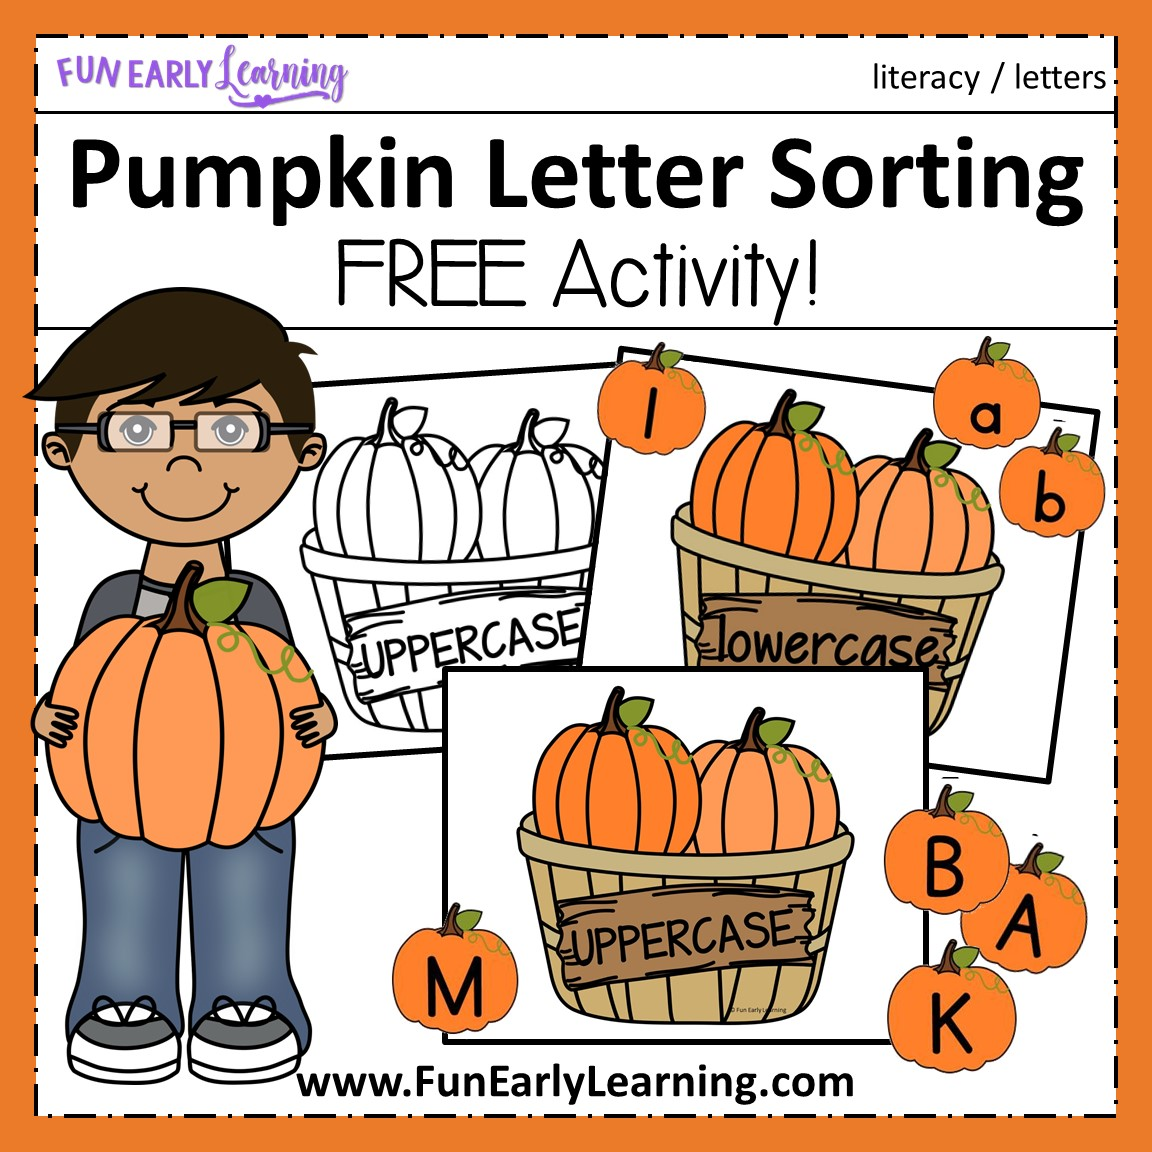 Pumpkin Letter Sorting Activity For Uppercase And